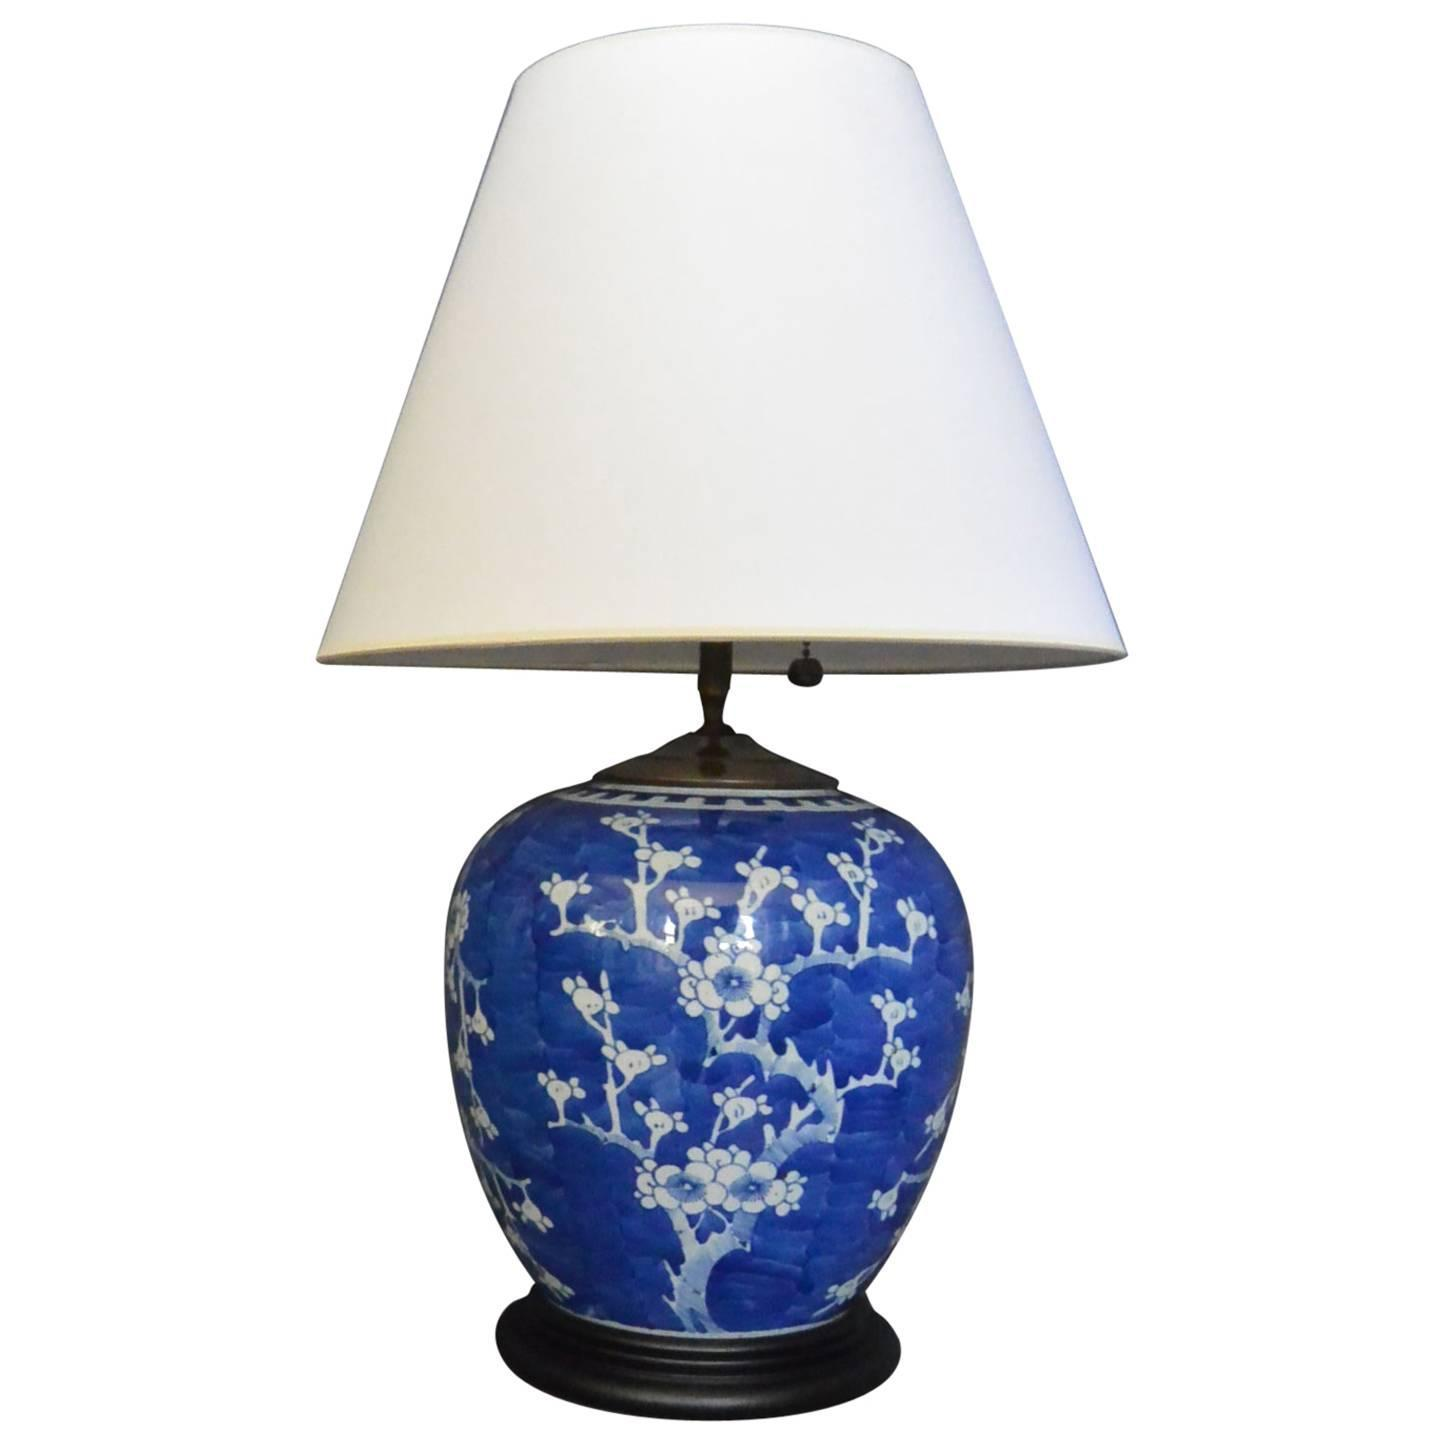 Cherry Blossom Table Lamps Blue And White Cherry Blossom Lamp For Sale At 1stdibs